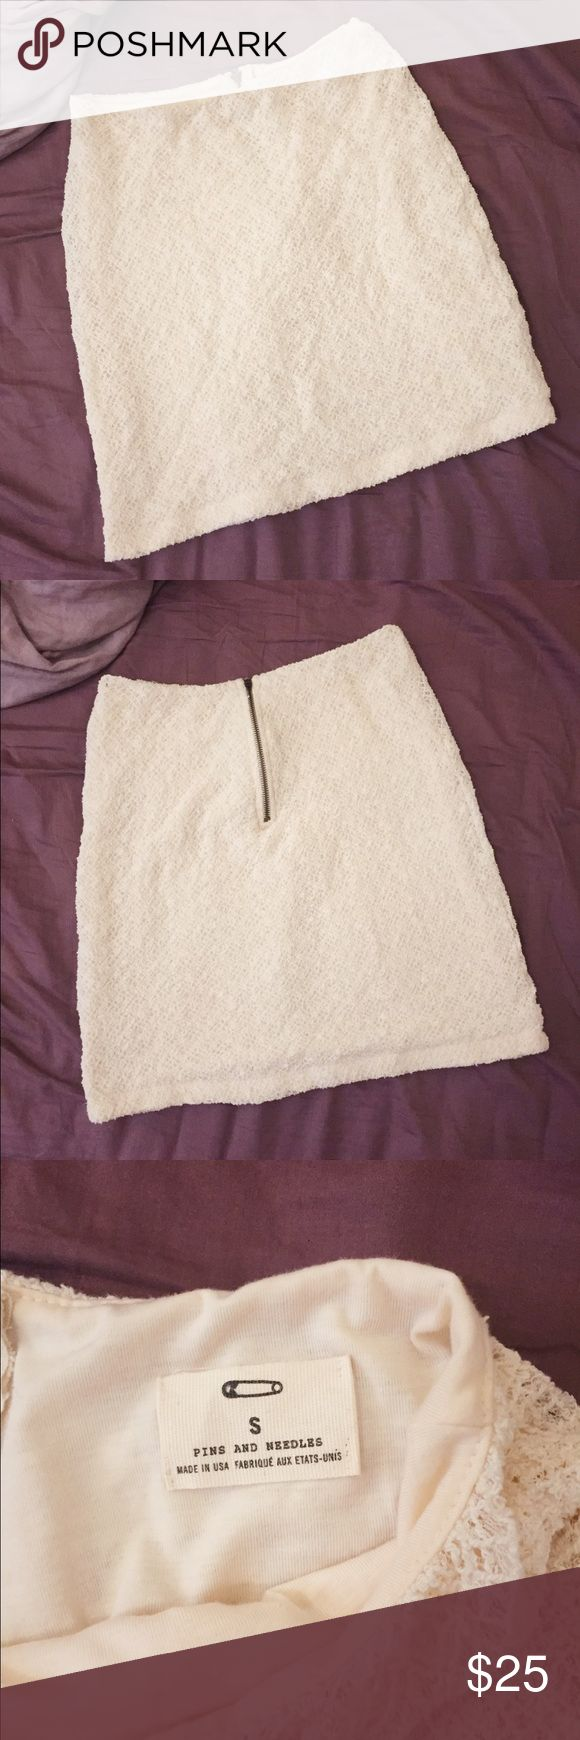 Cream Crocheted Pins & Needles Skirt Lined, super soft off-white skirt from Pins & Needles purchased at Urban Outfitters. Can be for a night out or formal occasion, dress up or dress down! Urban Outfitters Skirts Mini